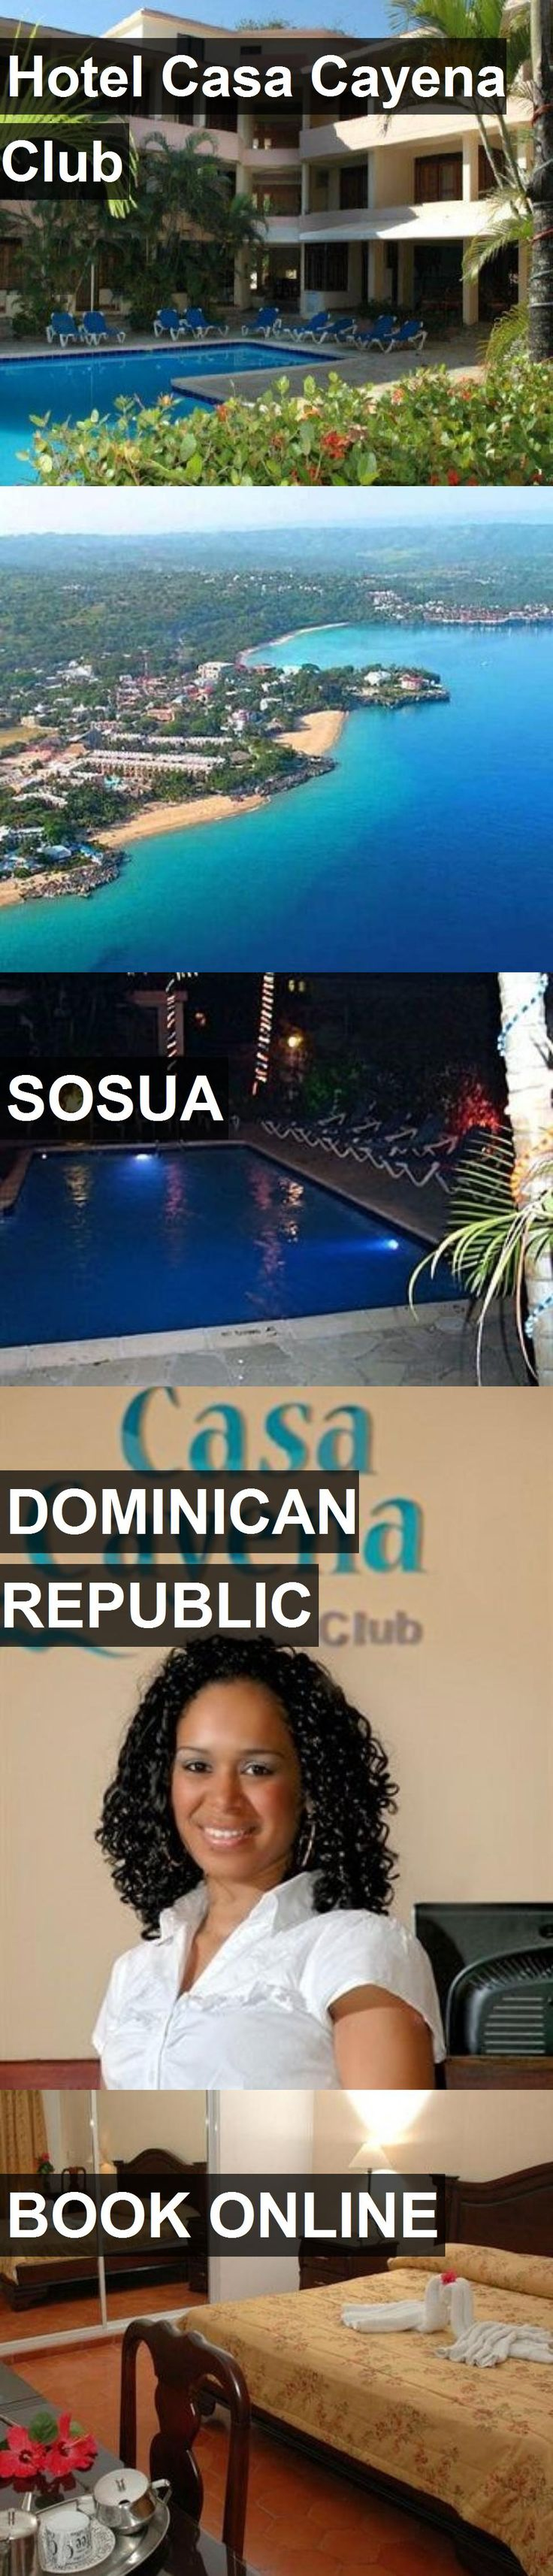 Hotel Hotel Casa Cayena Club in Sosua, Dominican Republic. For more information, photos, reviews and best prices please follow the link. #DominicanRepublic #Sosua #HotelCasaCayenaClub #hotel #travel #vacation